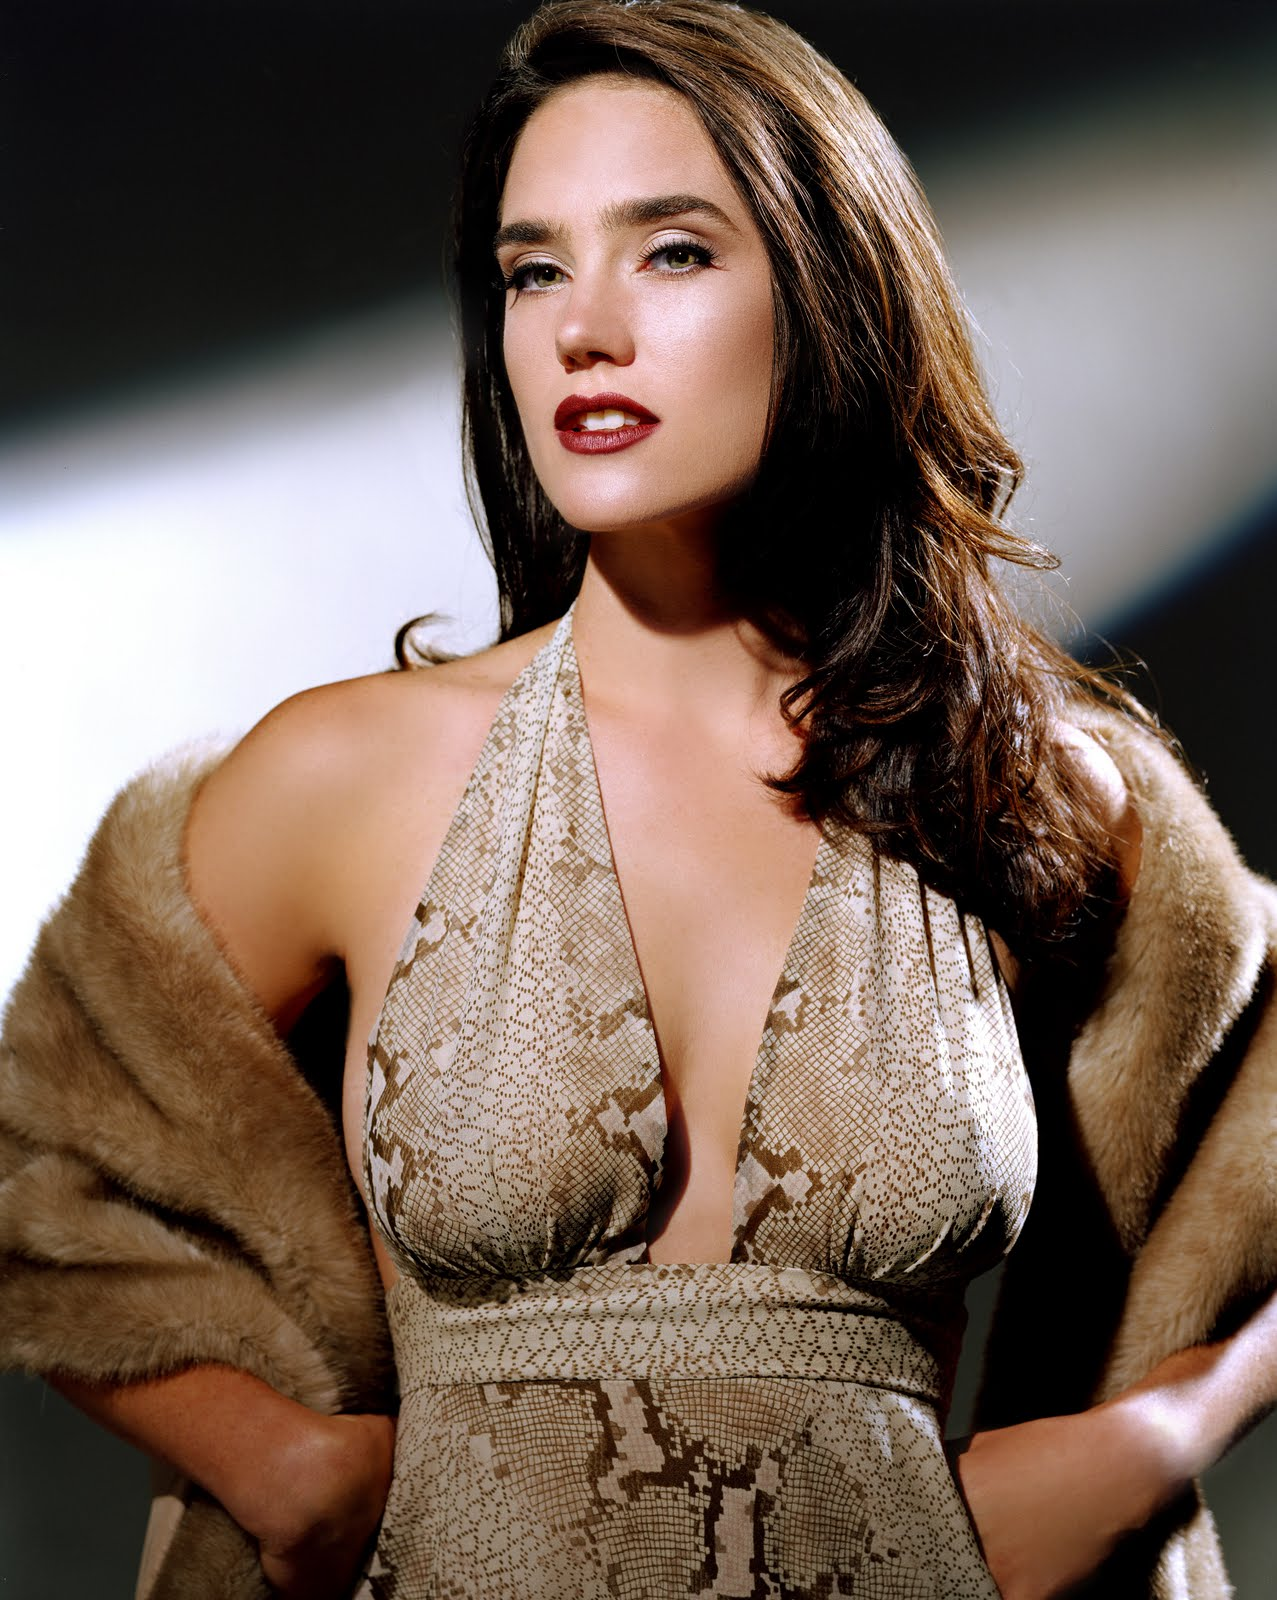 jennifer connelly tits